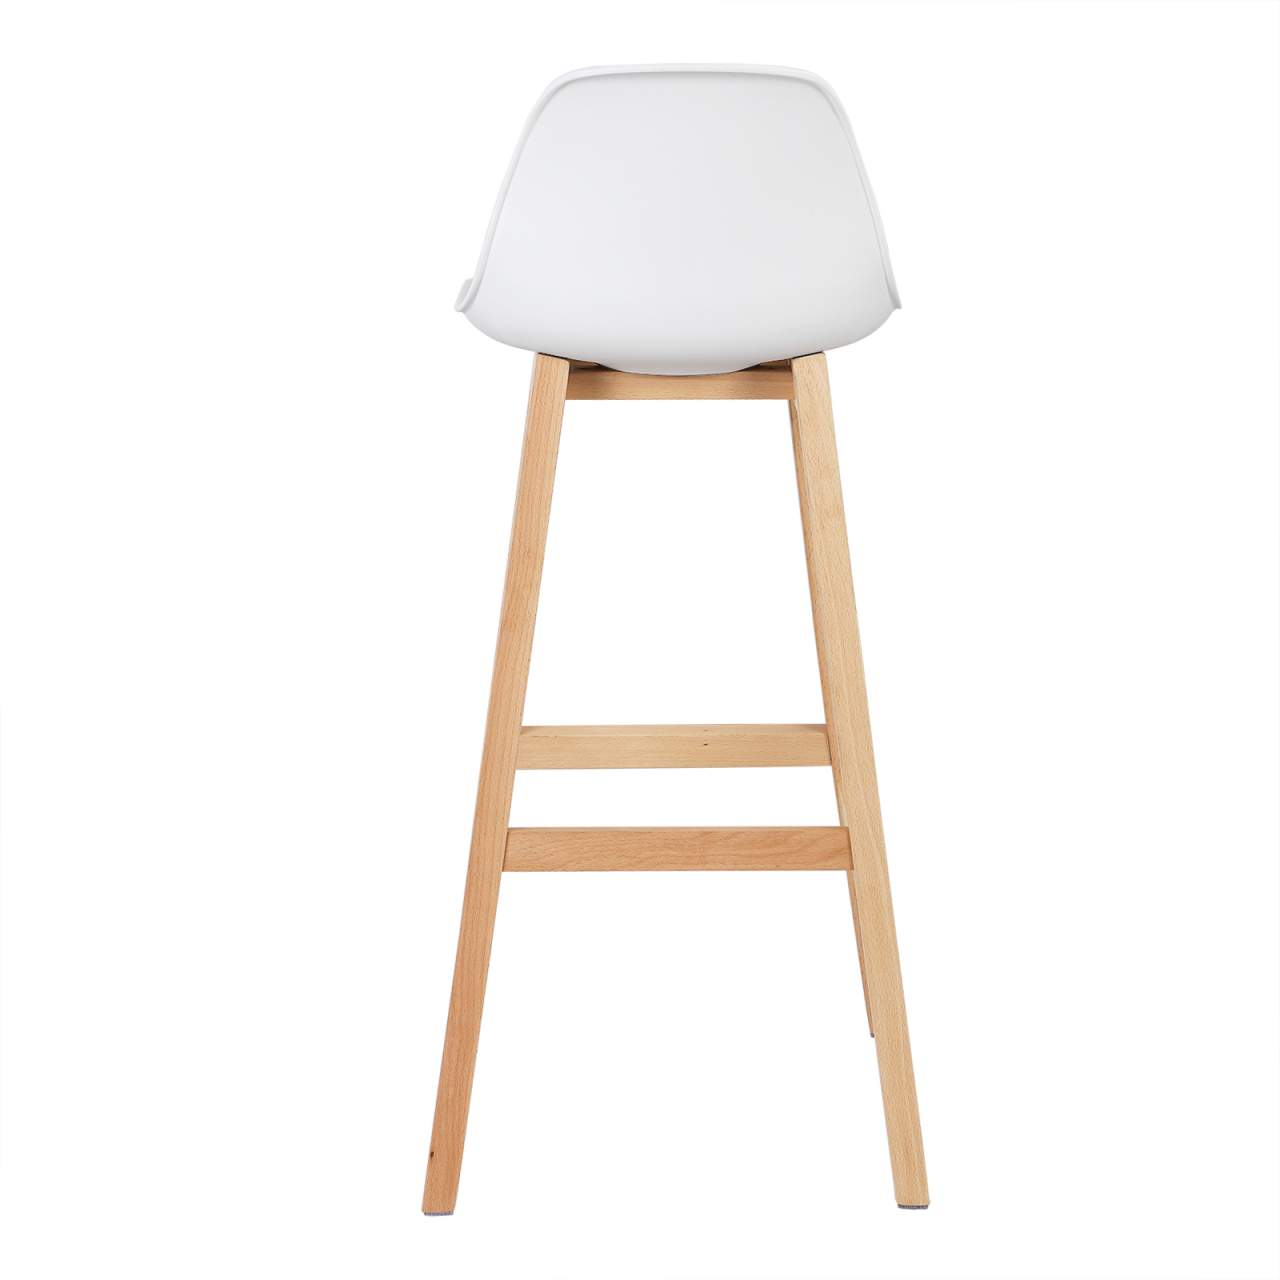 Breakfast Kitchen Counter Chairs Bar Stools Set of 9 , White